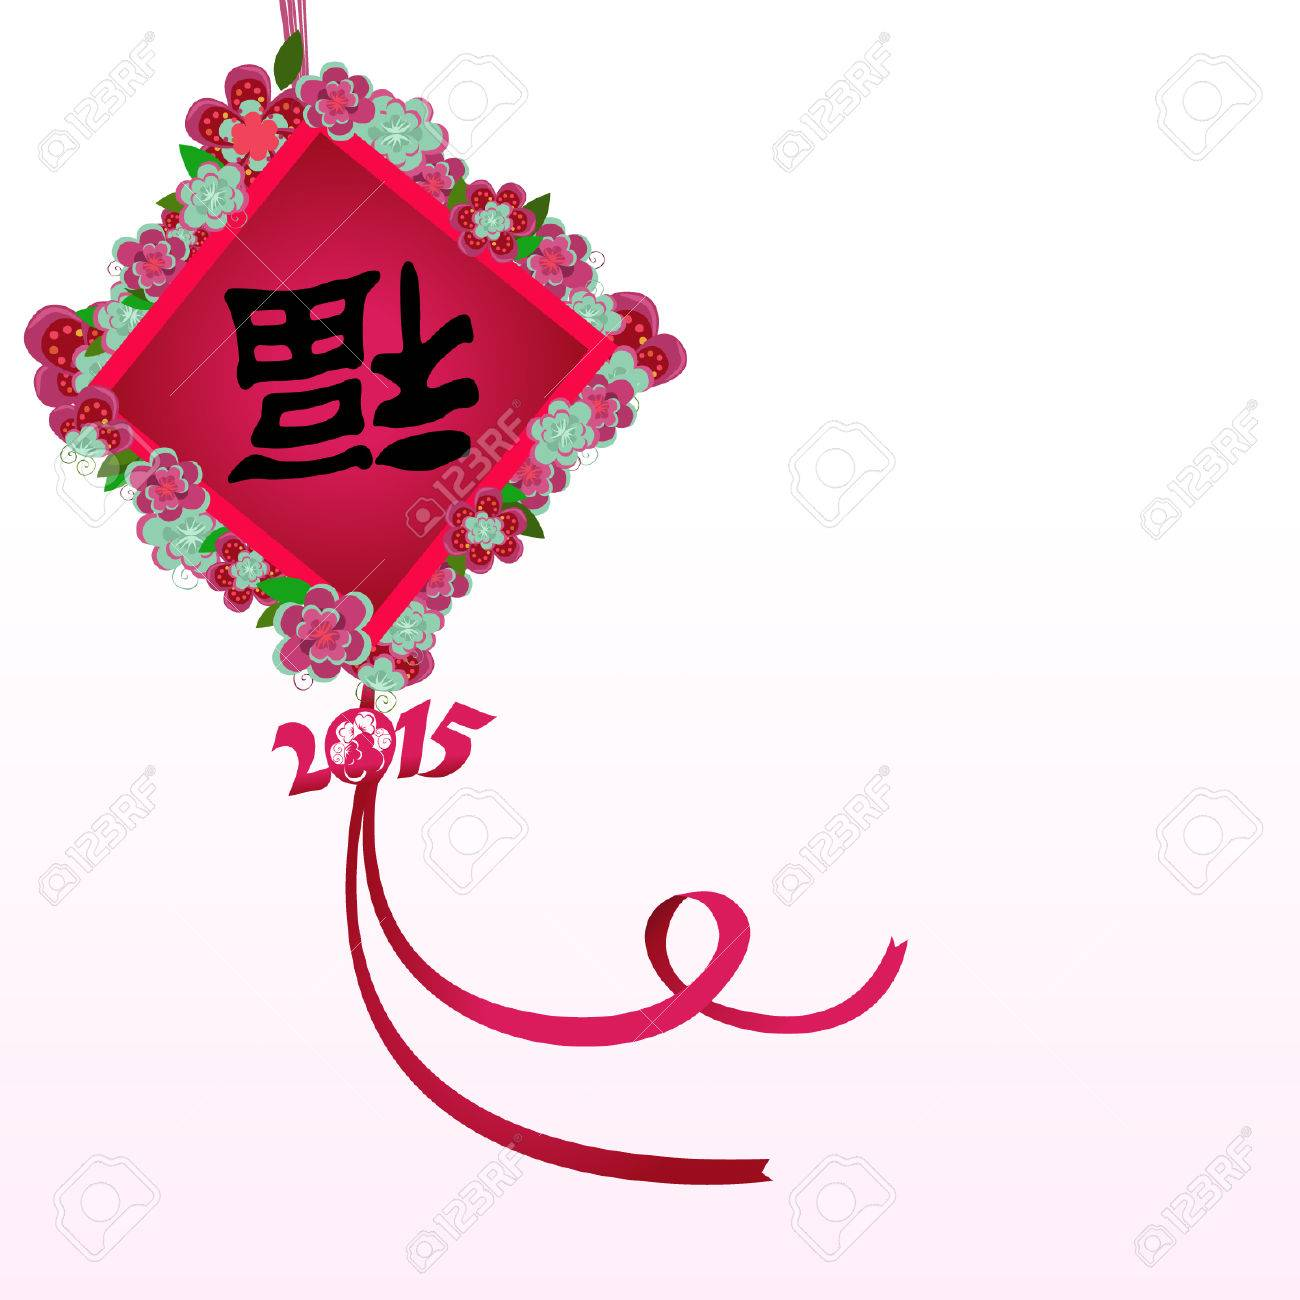 colorful typography design for lunar new year chinese new year 2015 greeting on floral background it - Chinese Lunar New Year 2015